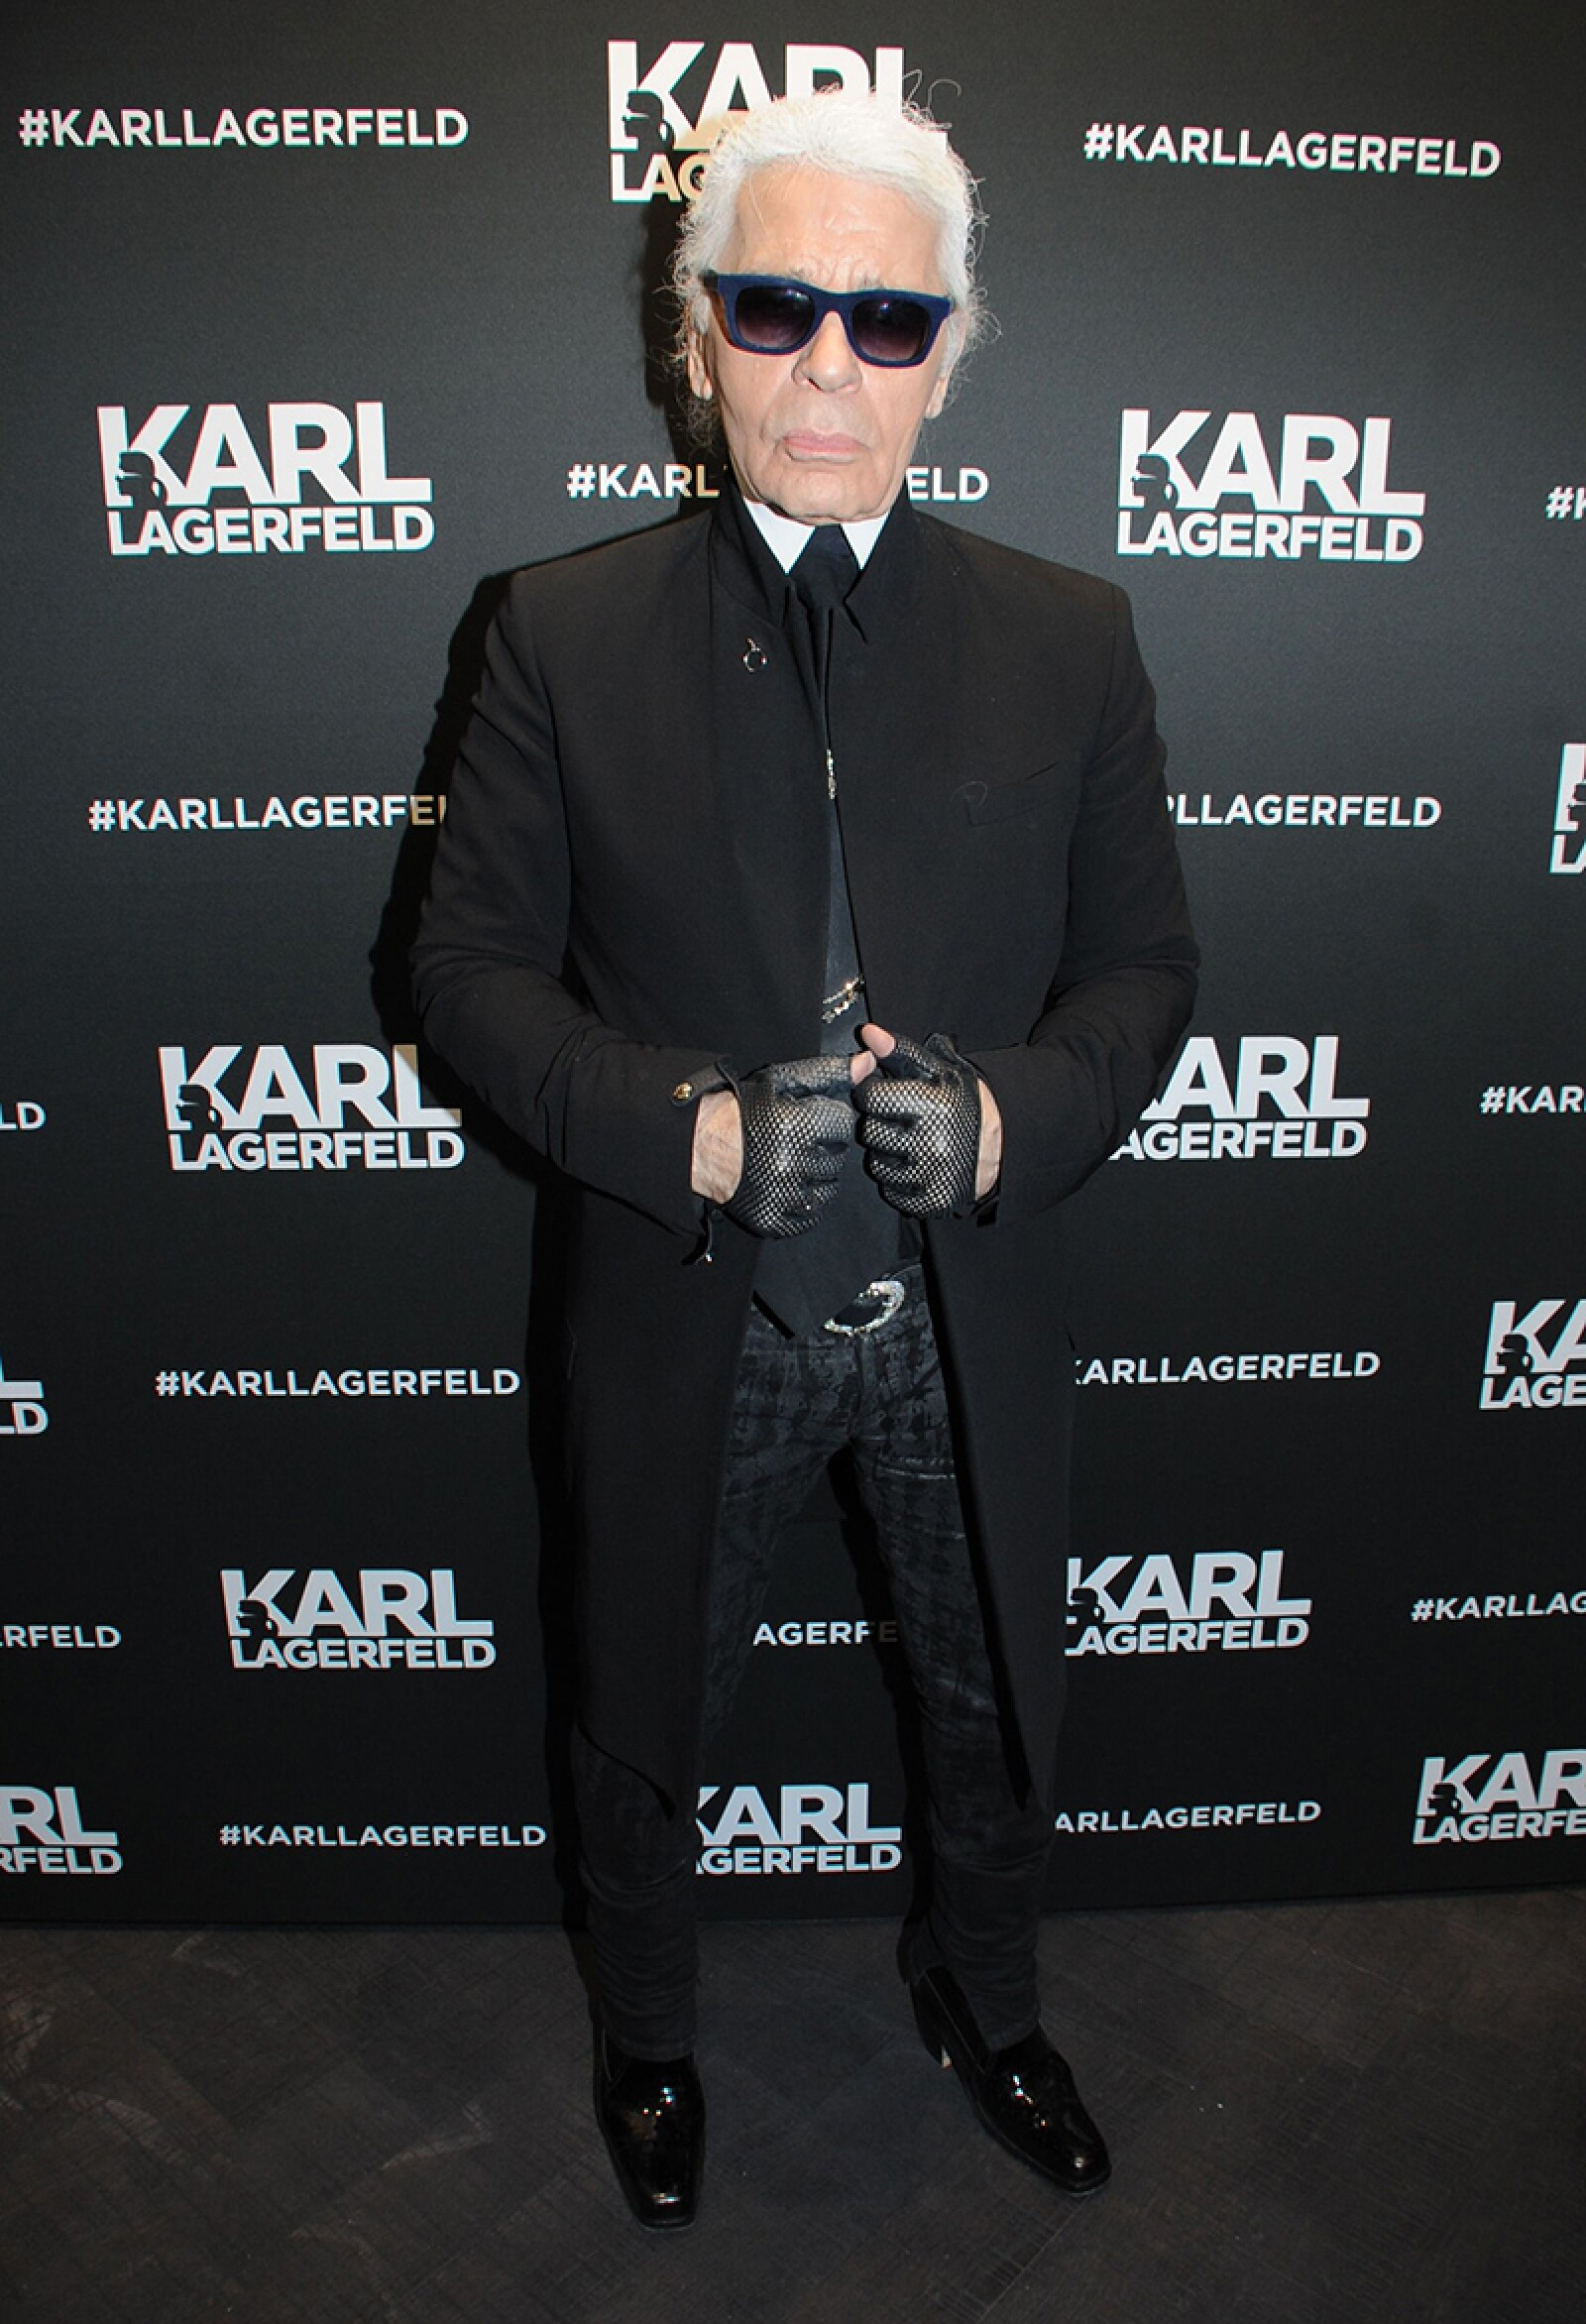 Karl Lagerfeld Store & Fragrance Launch Party, London, Britain - 13 Mar 2014